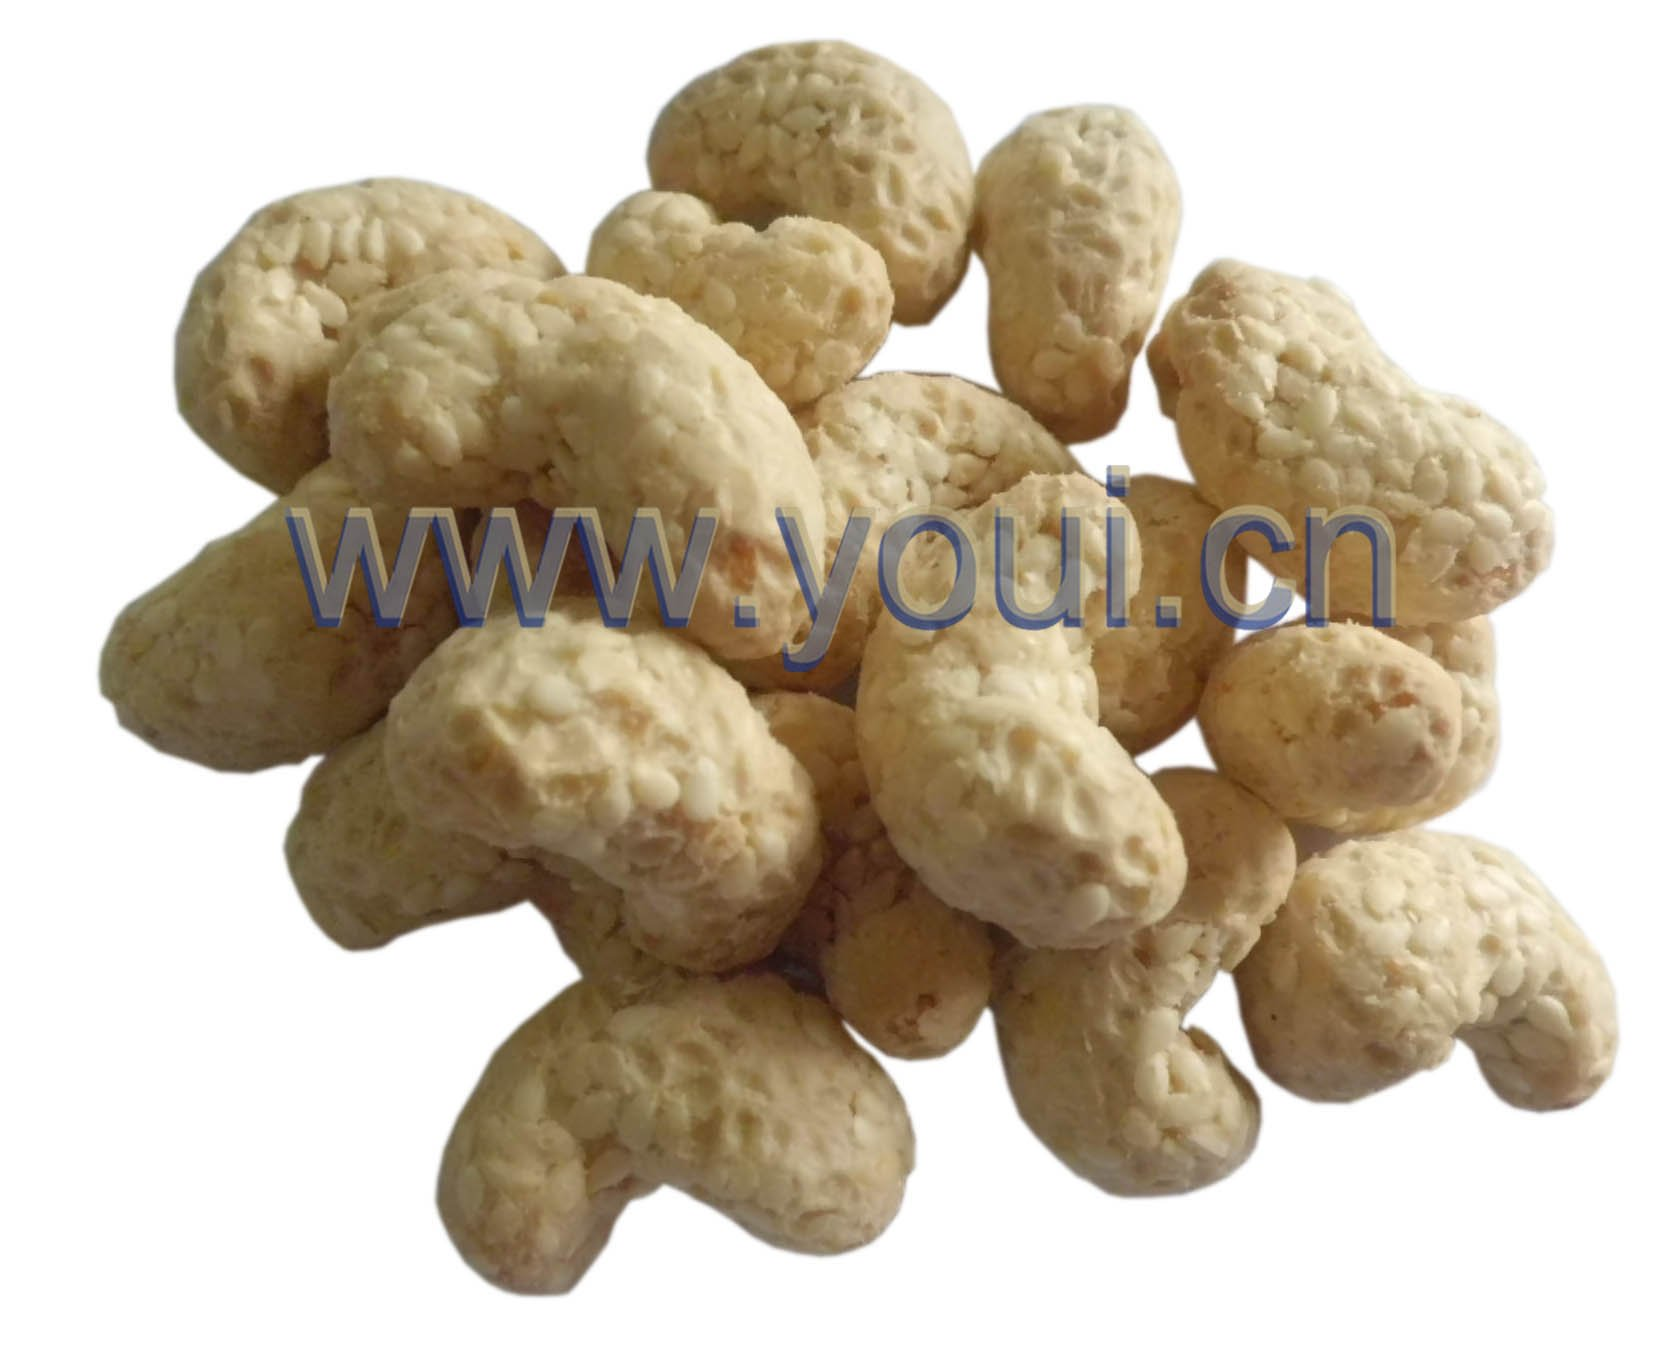 BRC Certified Sesame Coated Cashews nuts